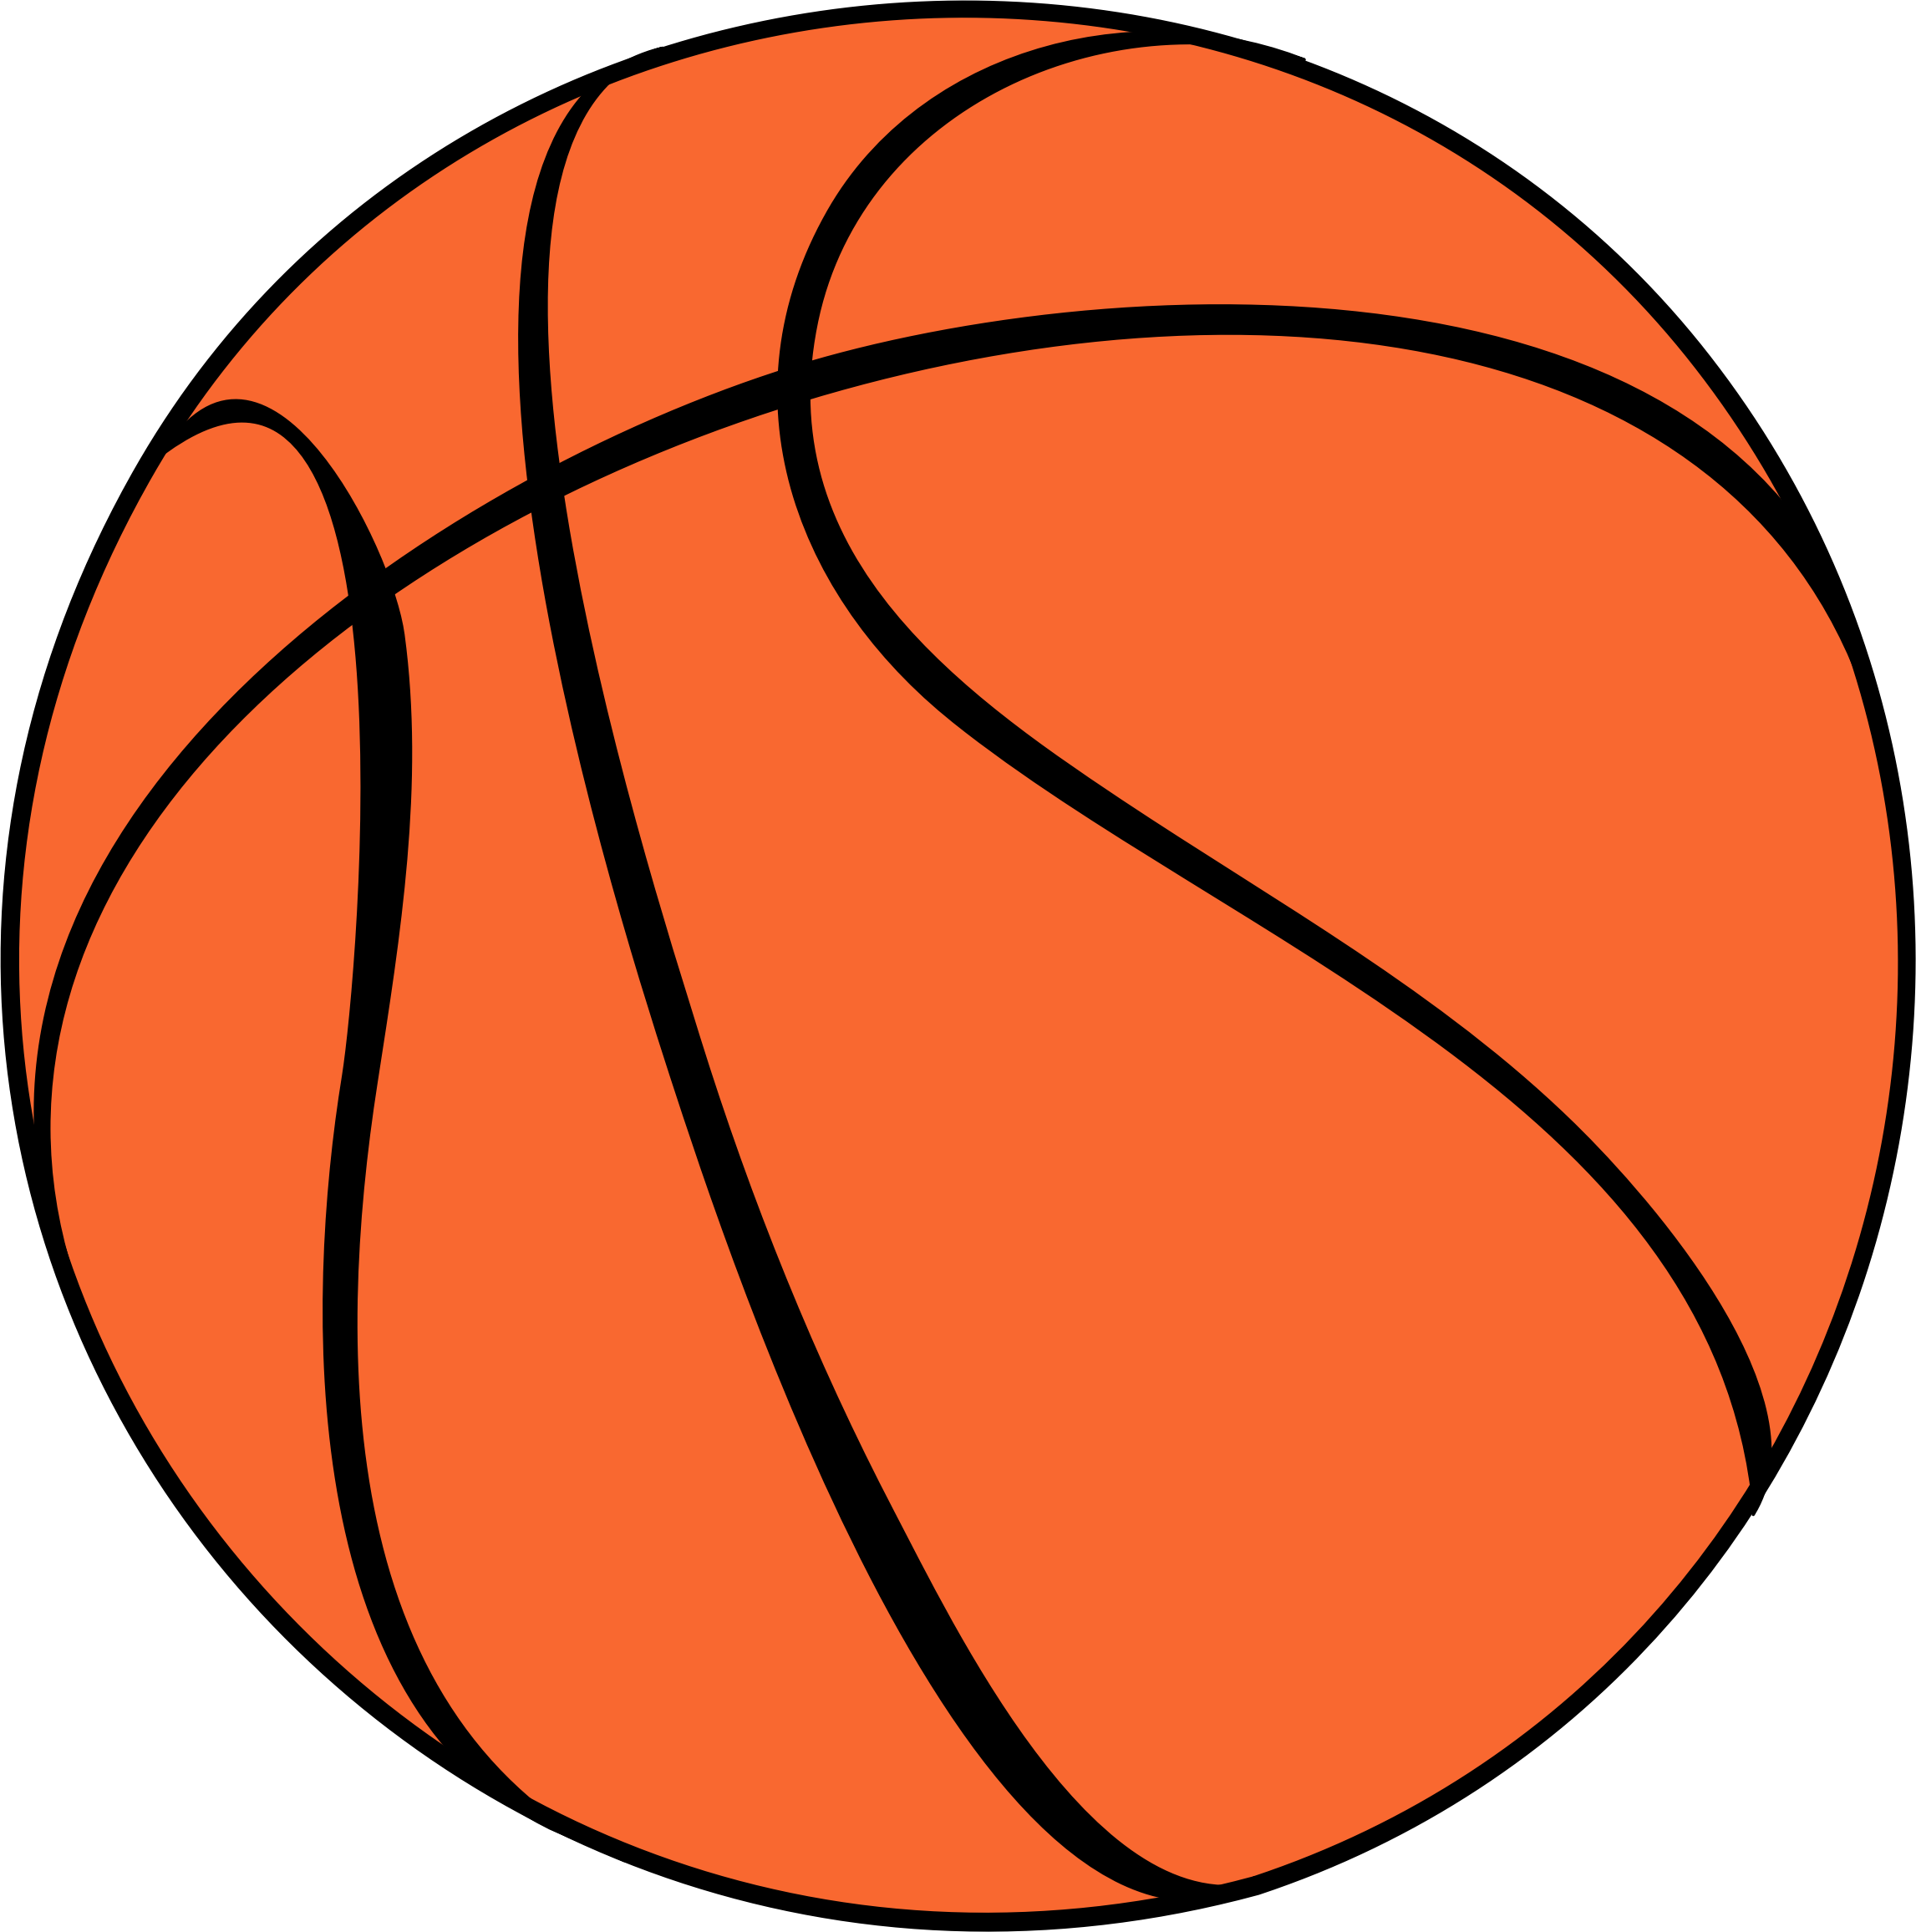 Purple clipart basketball. Another big image png